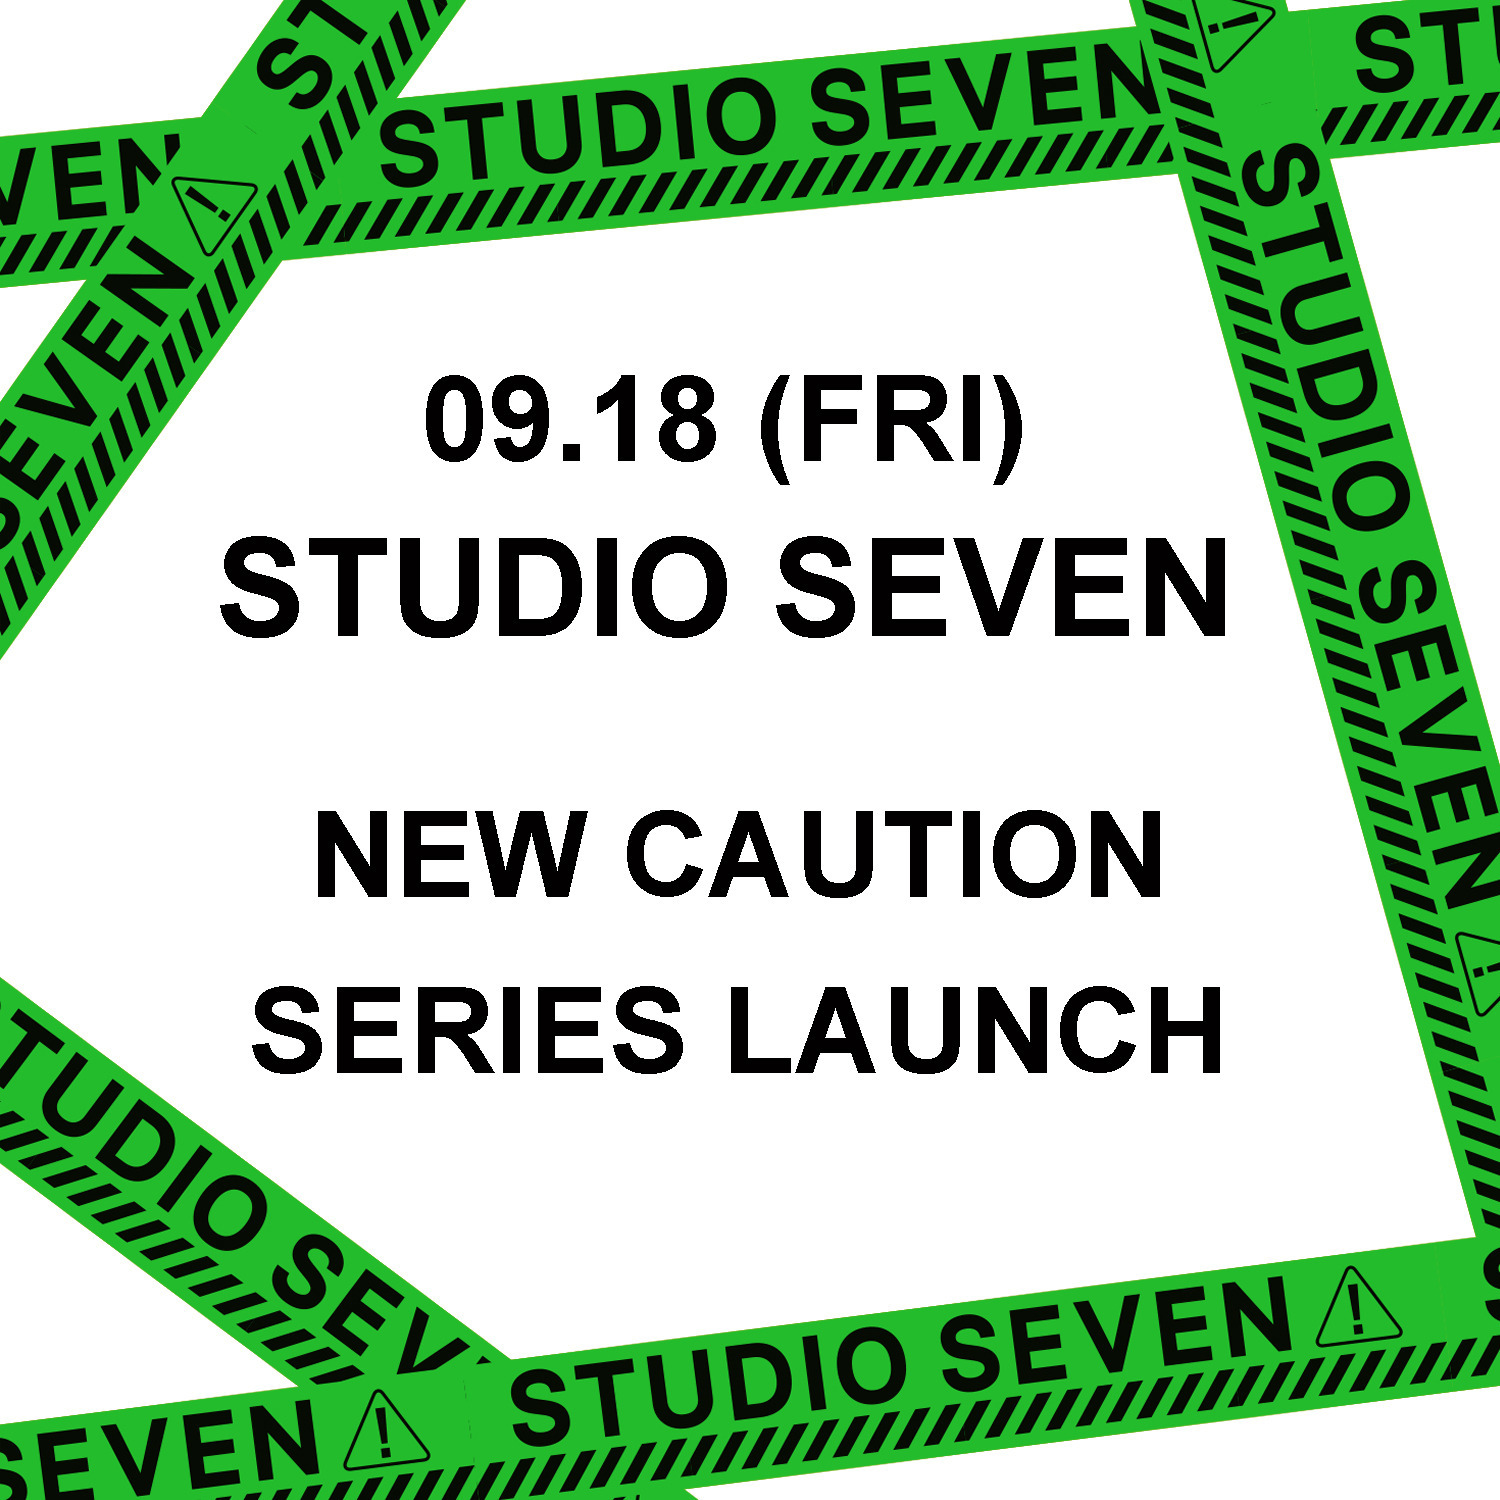 ■NEW CAUTION SERIES LAUNCH